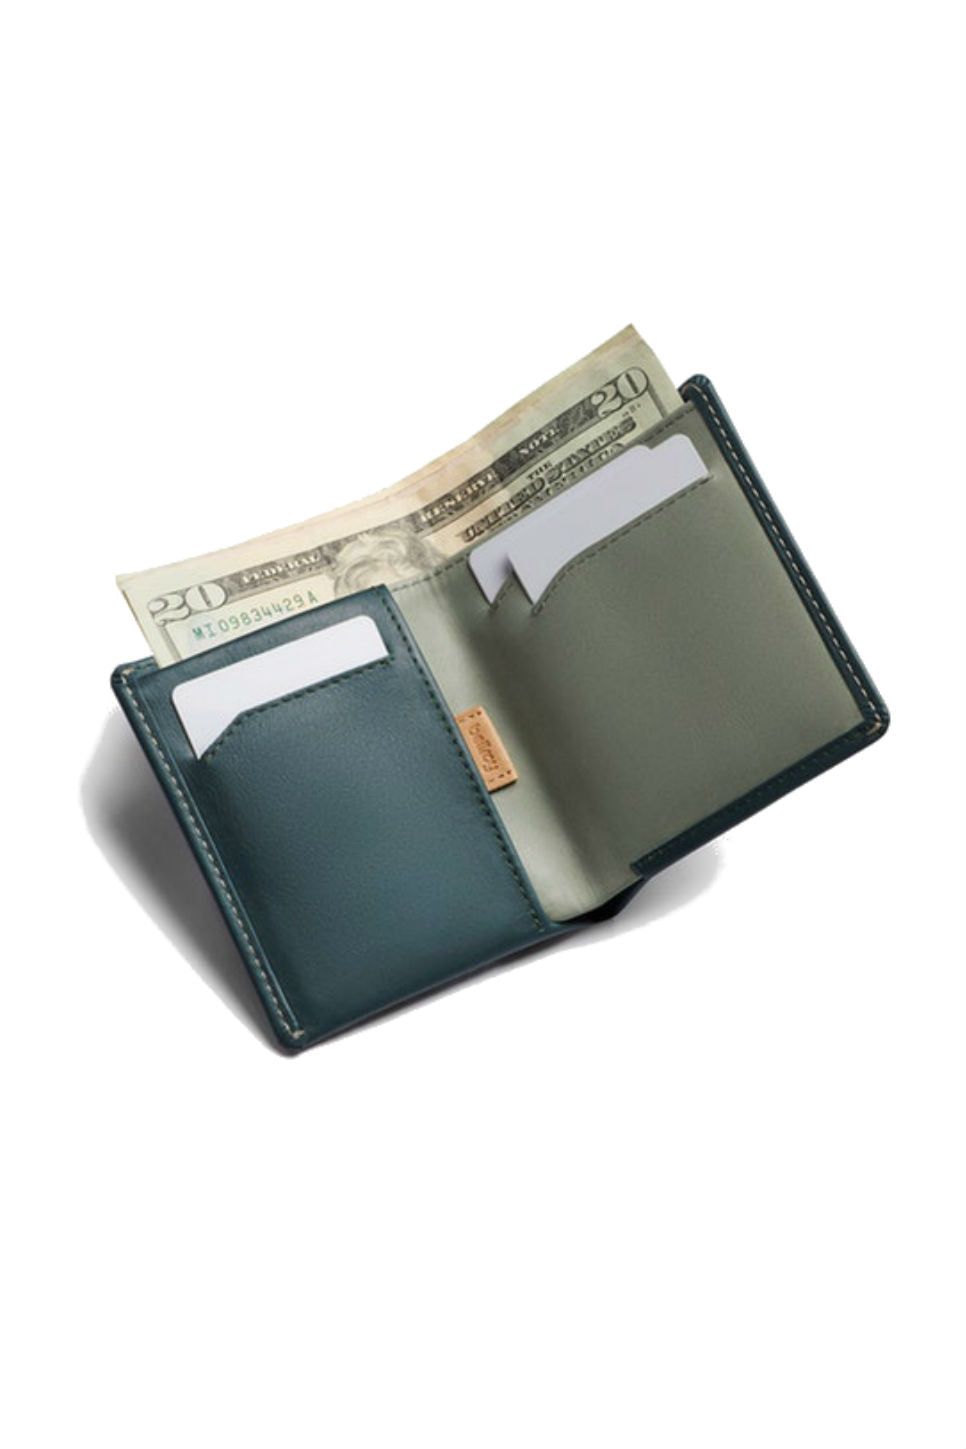 Bellroy - RFID Note Sleeve - Teal - Inside